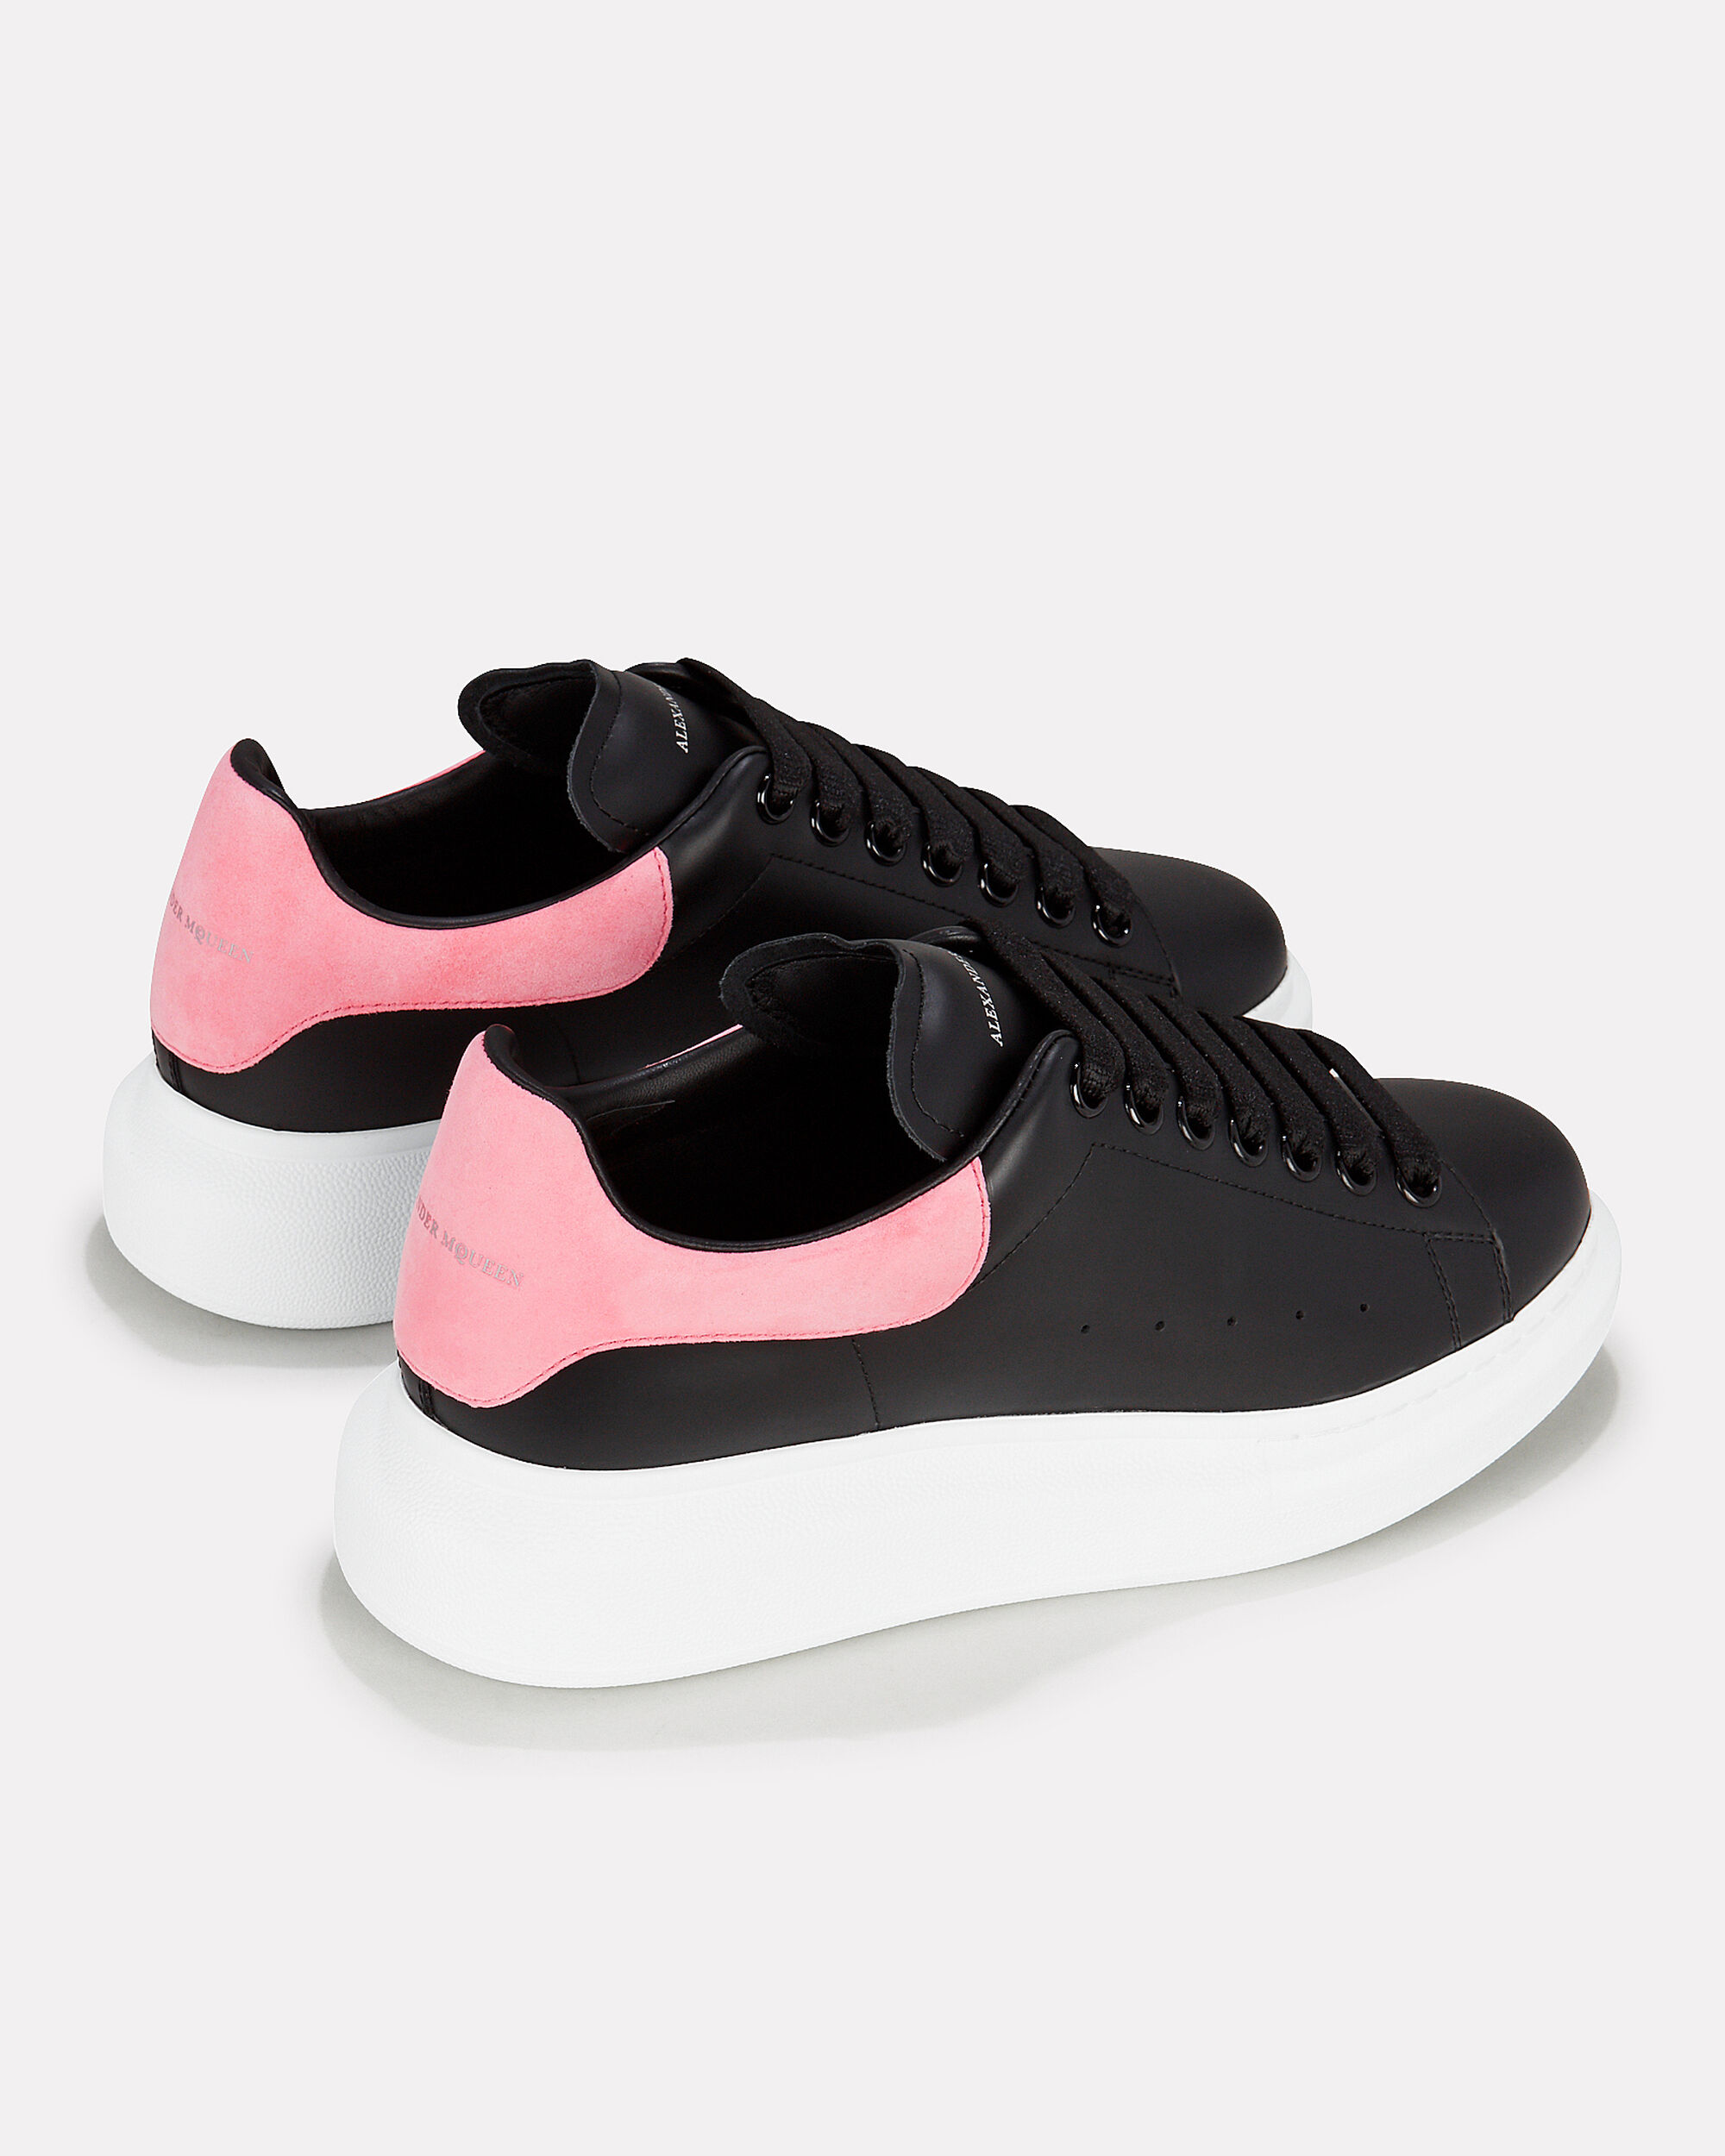 Pelle Pink And Black Leather Sneakers, BLACK, hi-res